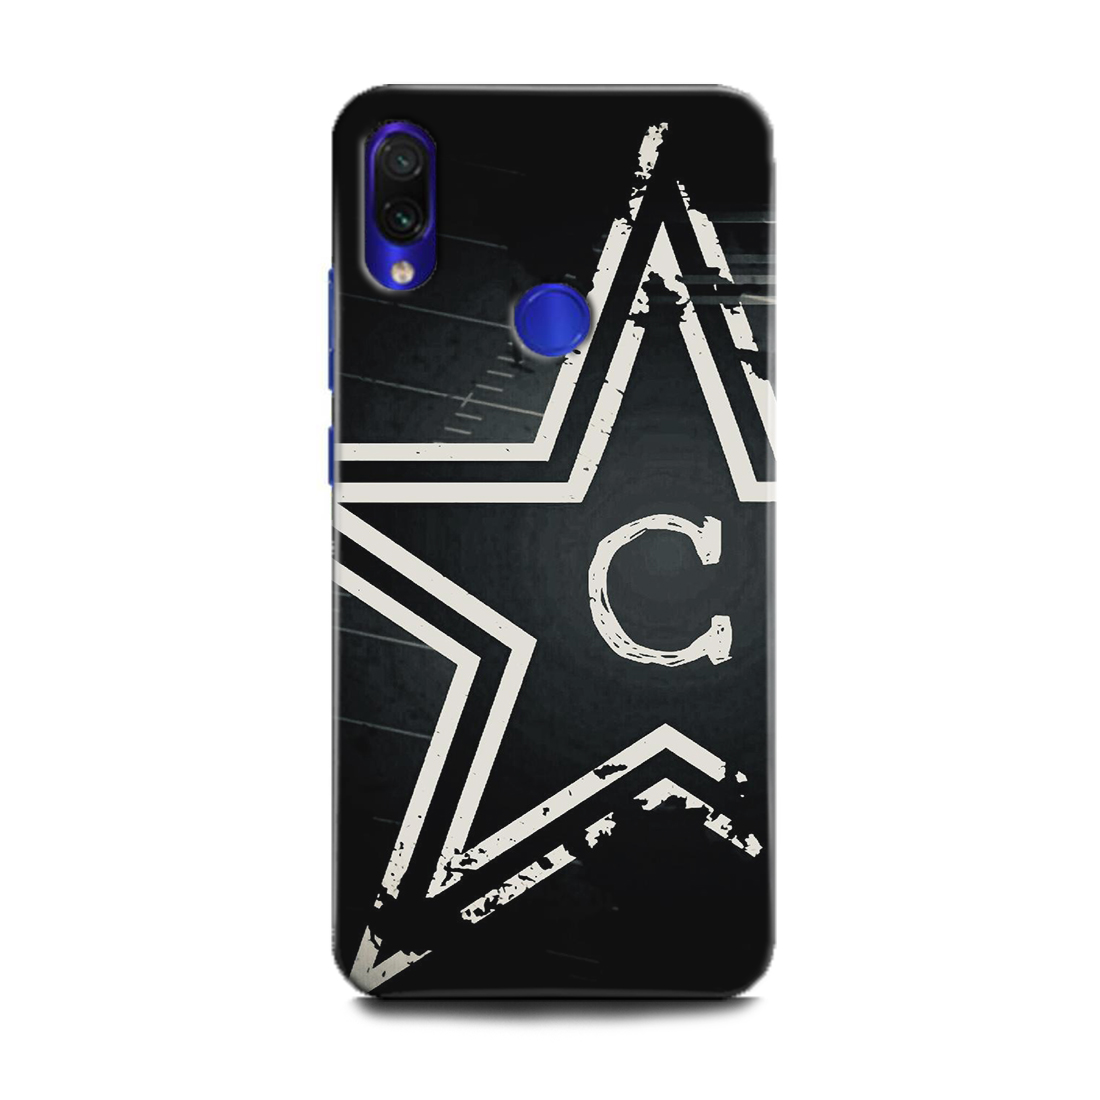 INDICRAFT Mobile Back Cover For Mi Redmi Y3 / Hard Case (C, C Letter, Star, Black, White, C Name, C Alphabet, Design, M1810F6I) (AB-RedmiY3-0362)